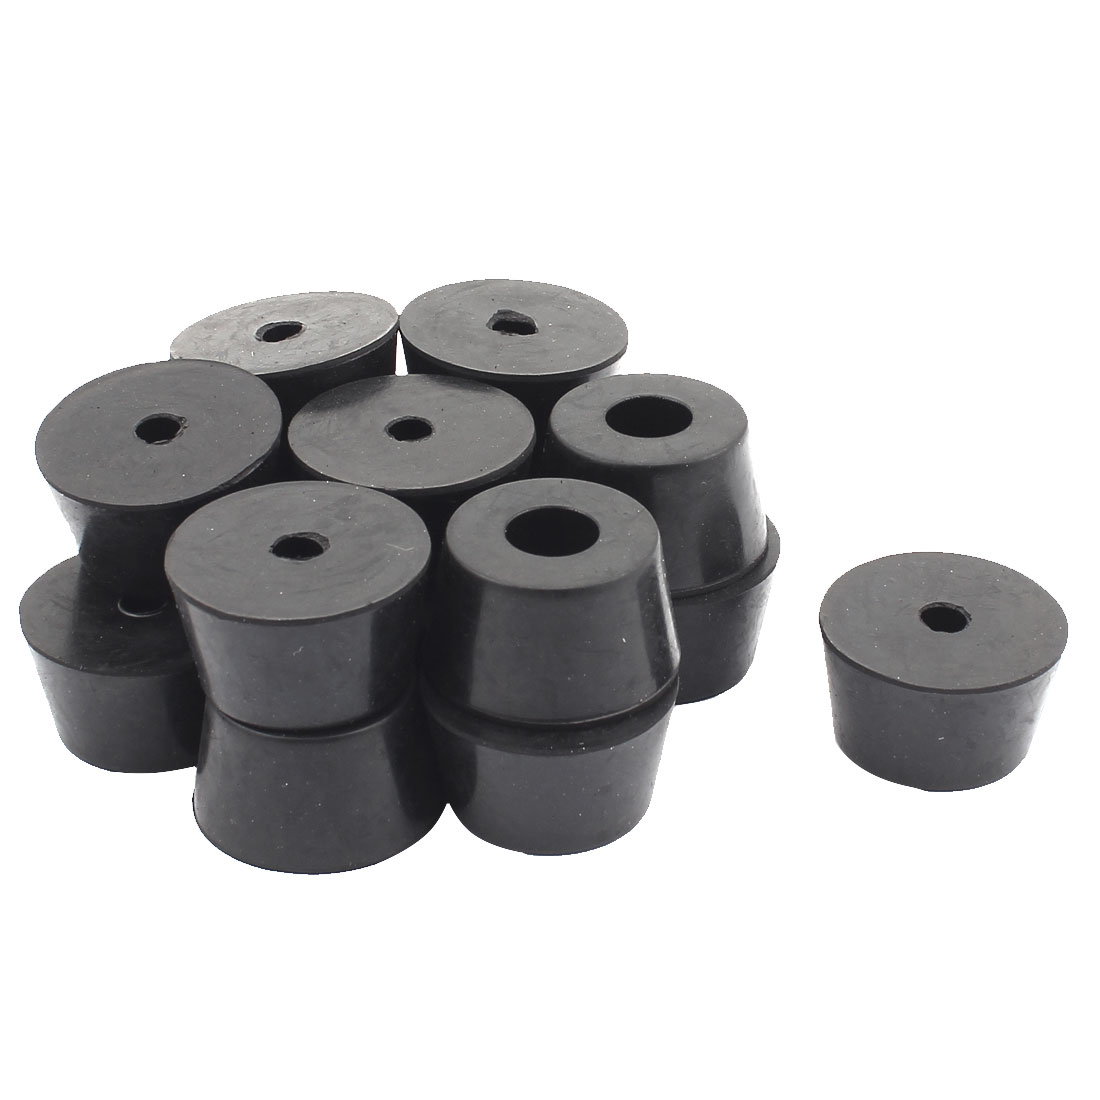 Rubber Cover Speaker Furniture Table Chair Feet Pad 32mm x 25mm x 18mm 15PCS